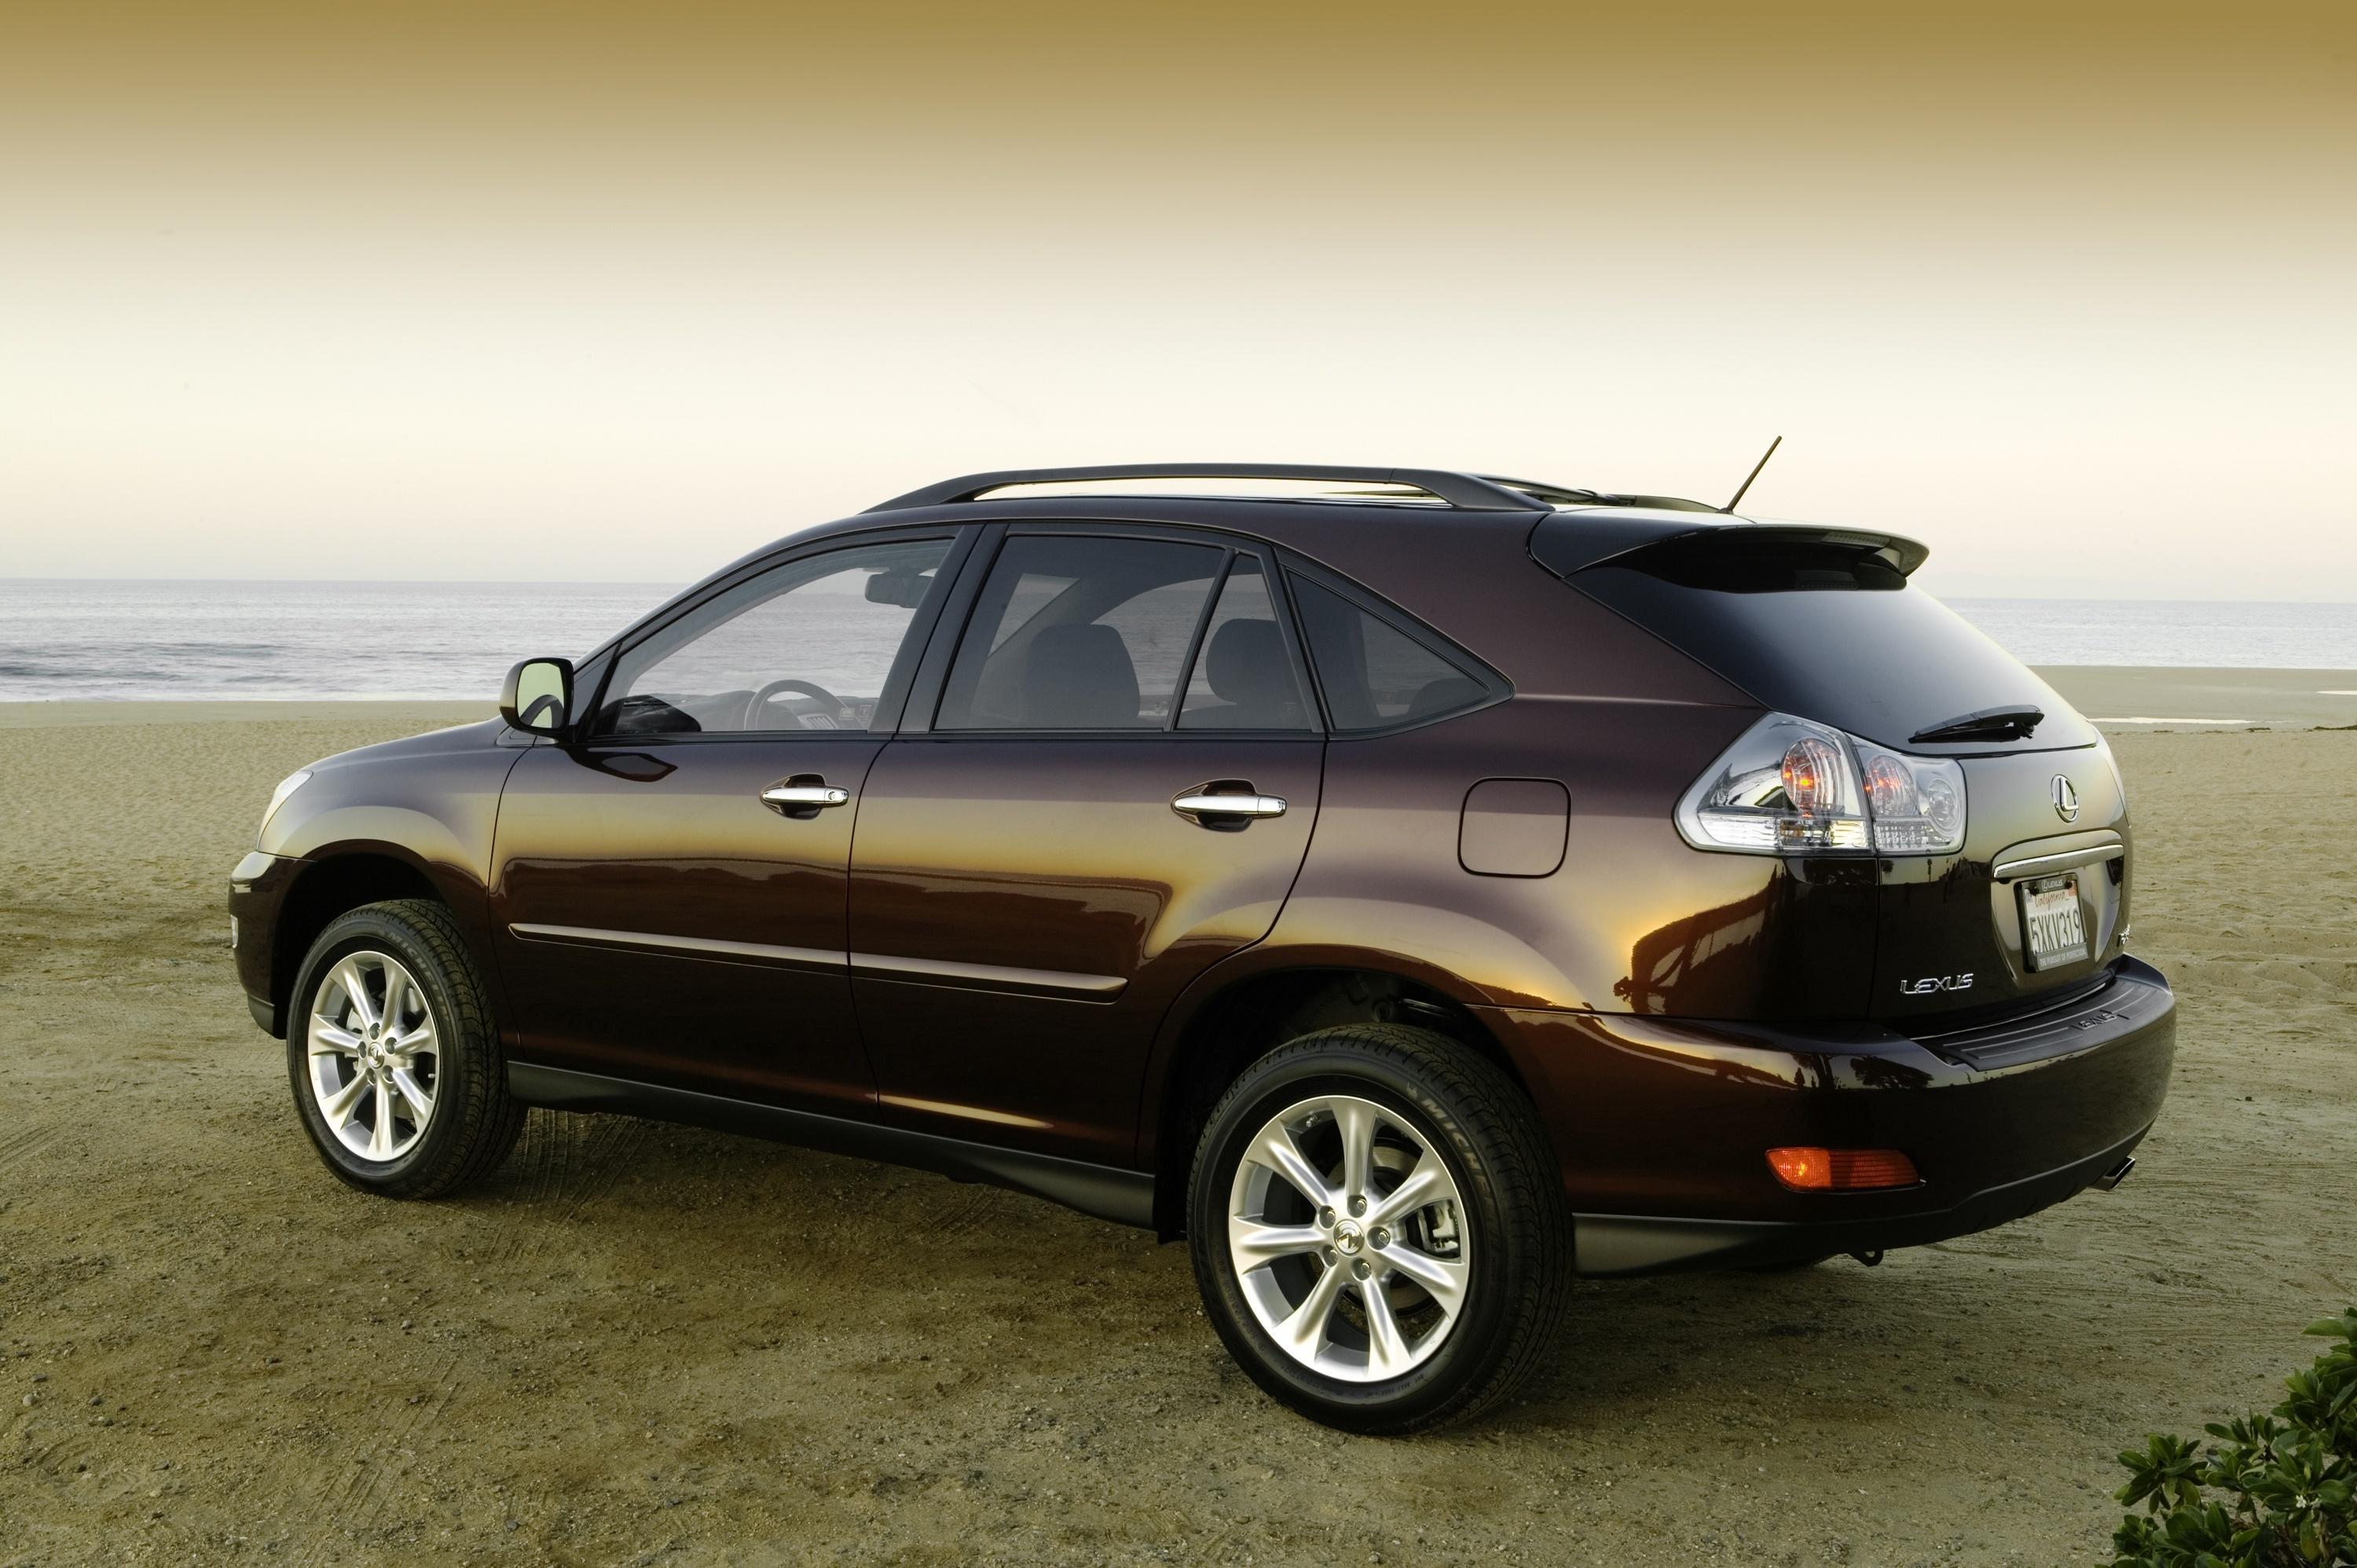 northern awd for rx lexus gazette pin colorado luxury suv sale door